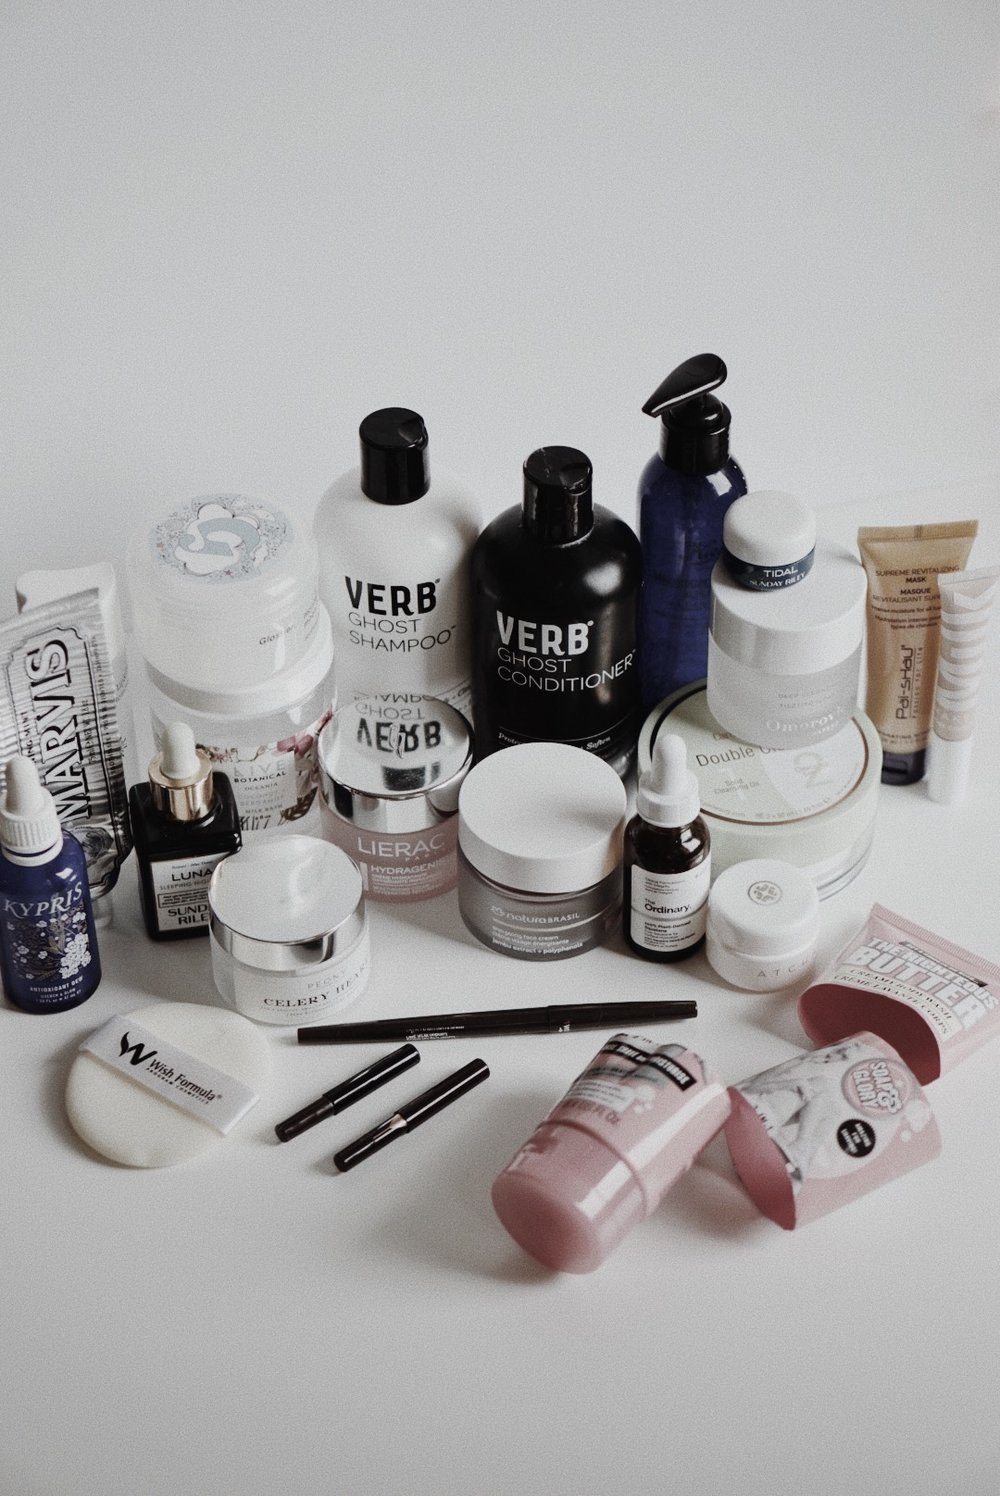 Reddit Reverse Rouge Kypris Sunday Riley Glossier VERB Kiehl's Soap and Glory Tatcha